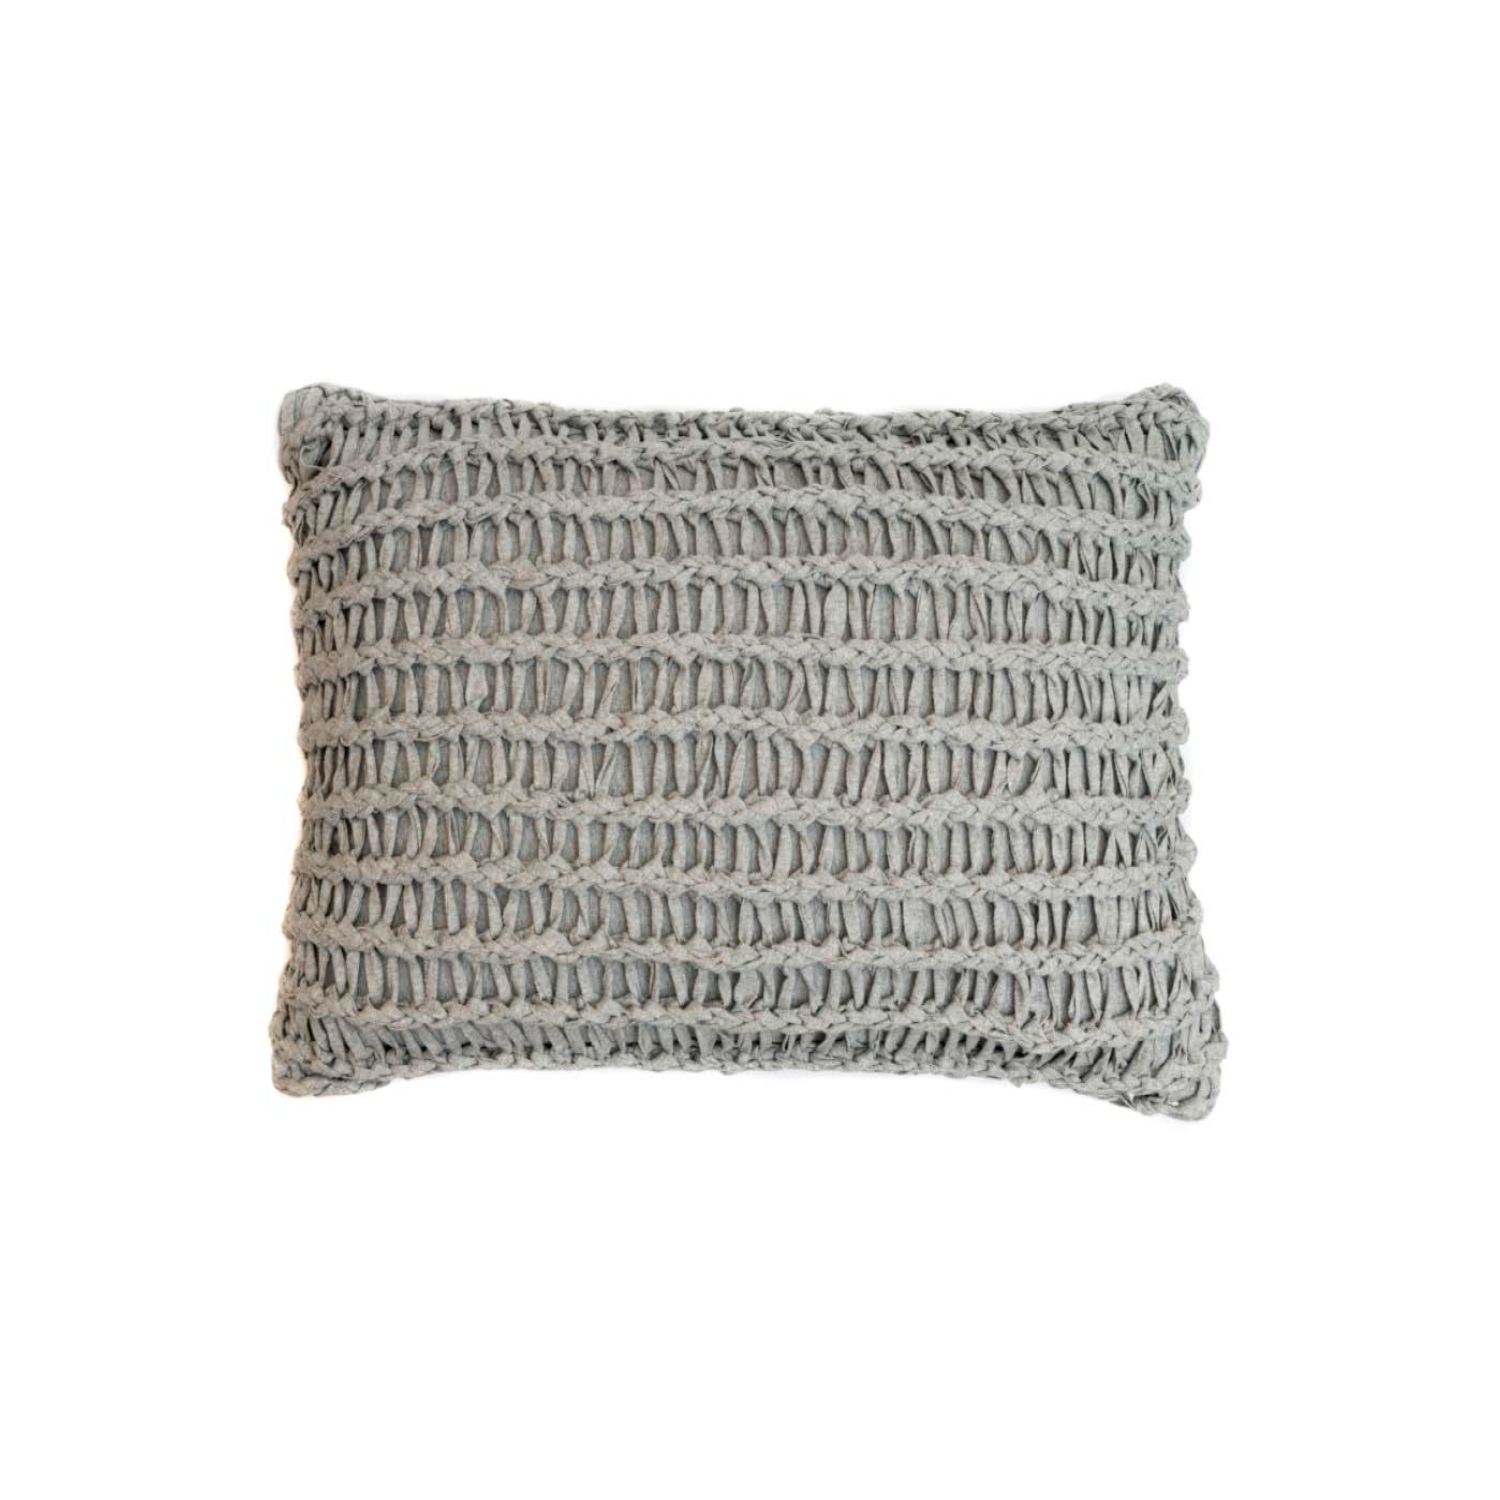 Stockholm Knitted Cotton Cushion Large - The Stockholm Line is carefully knitted within a trained community of women that found in their craft a way to provide for their families, each one of these cushions and throws is unique.  Elisa Atheniense Home soft indoors collection is made with natural cotton fibres, eco-friendly, handwoven or elaborated using traditional hand-loom techniques. The use of organic materials brings softness and comfort to the space. This collection combines their mission for responsible sourcing and manufacturing.  The hand woven cotton, washable cushion cover is made in Brazil and the inner cushion is made in the UK. All cushions come with Hollow Fibre filling. European Duck Feathers are optional upon request at an extra cost. Please enquire for more information and see colour chart for reference.   | Matter of Stuff